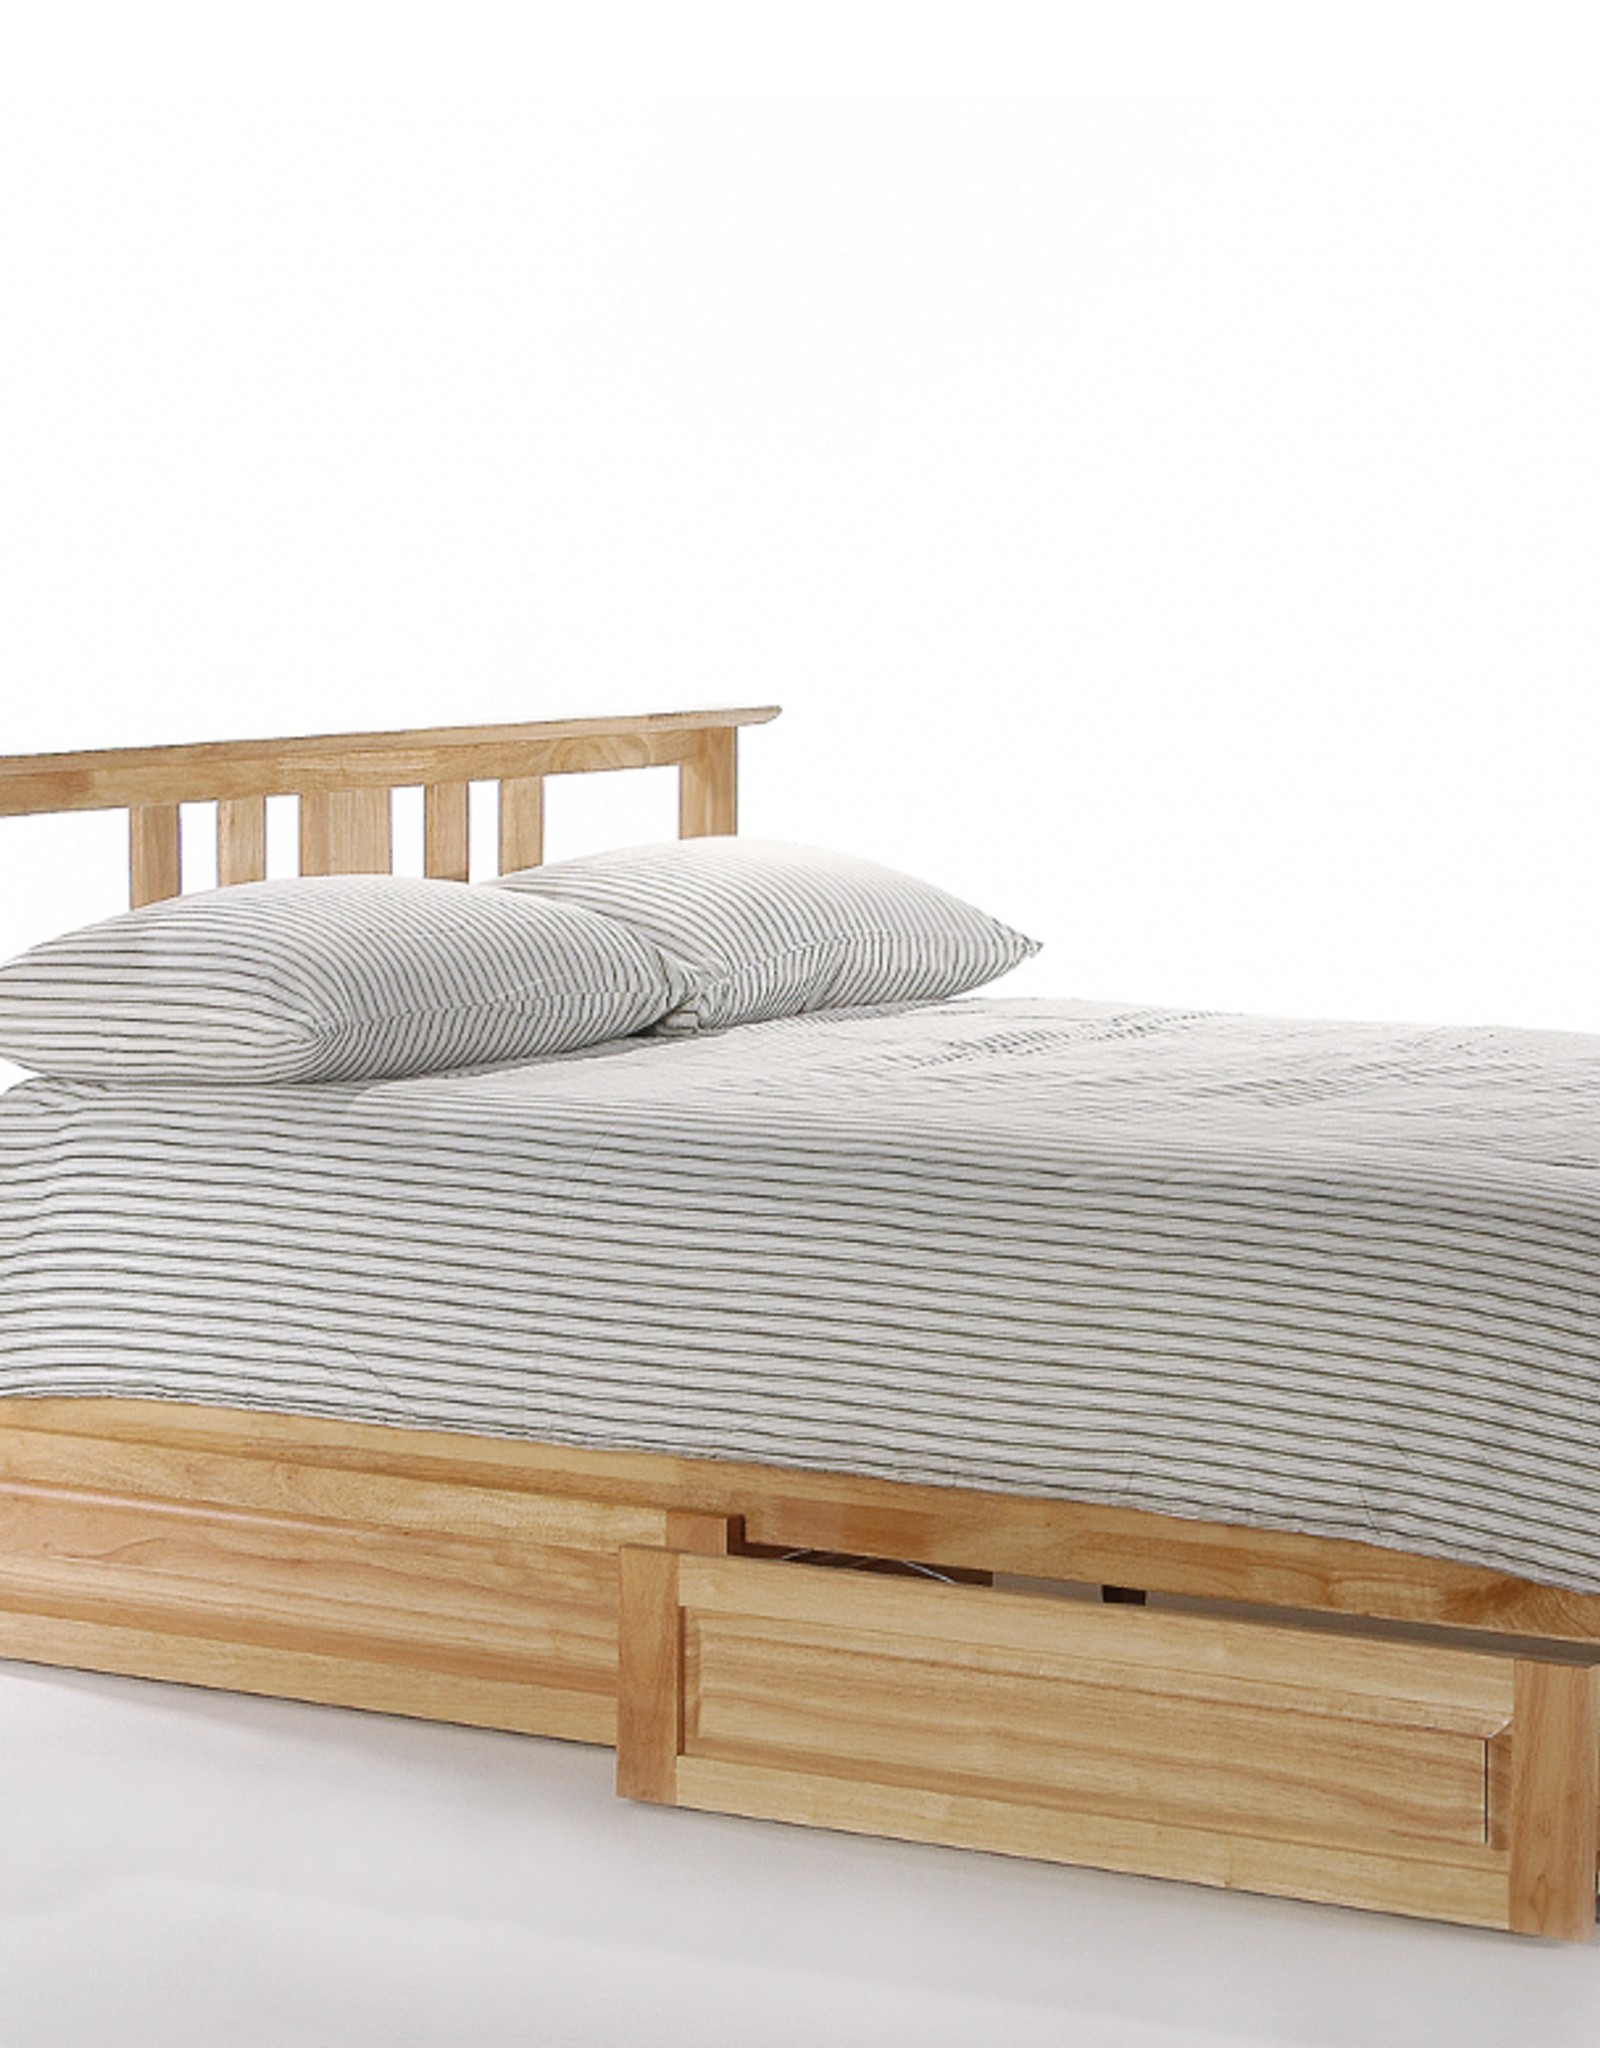 Thyme Platform Bed - Comes in Five Colors